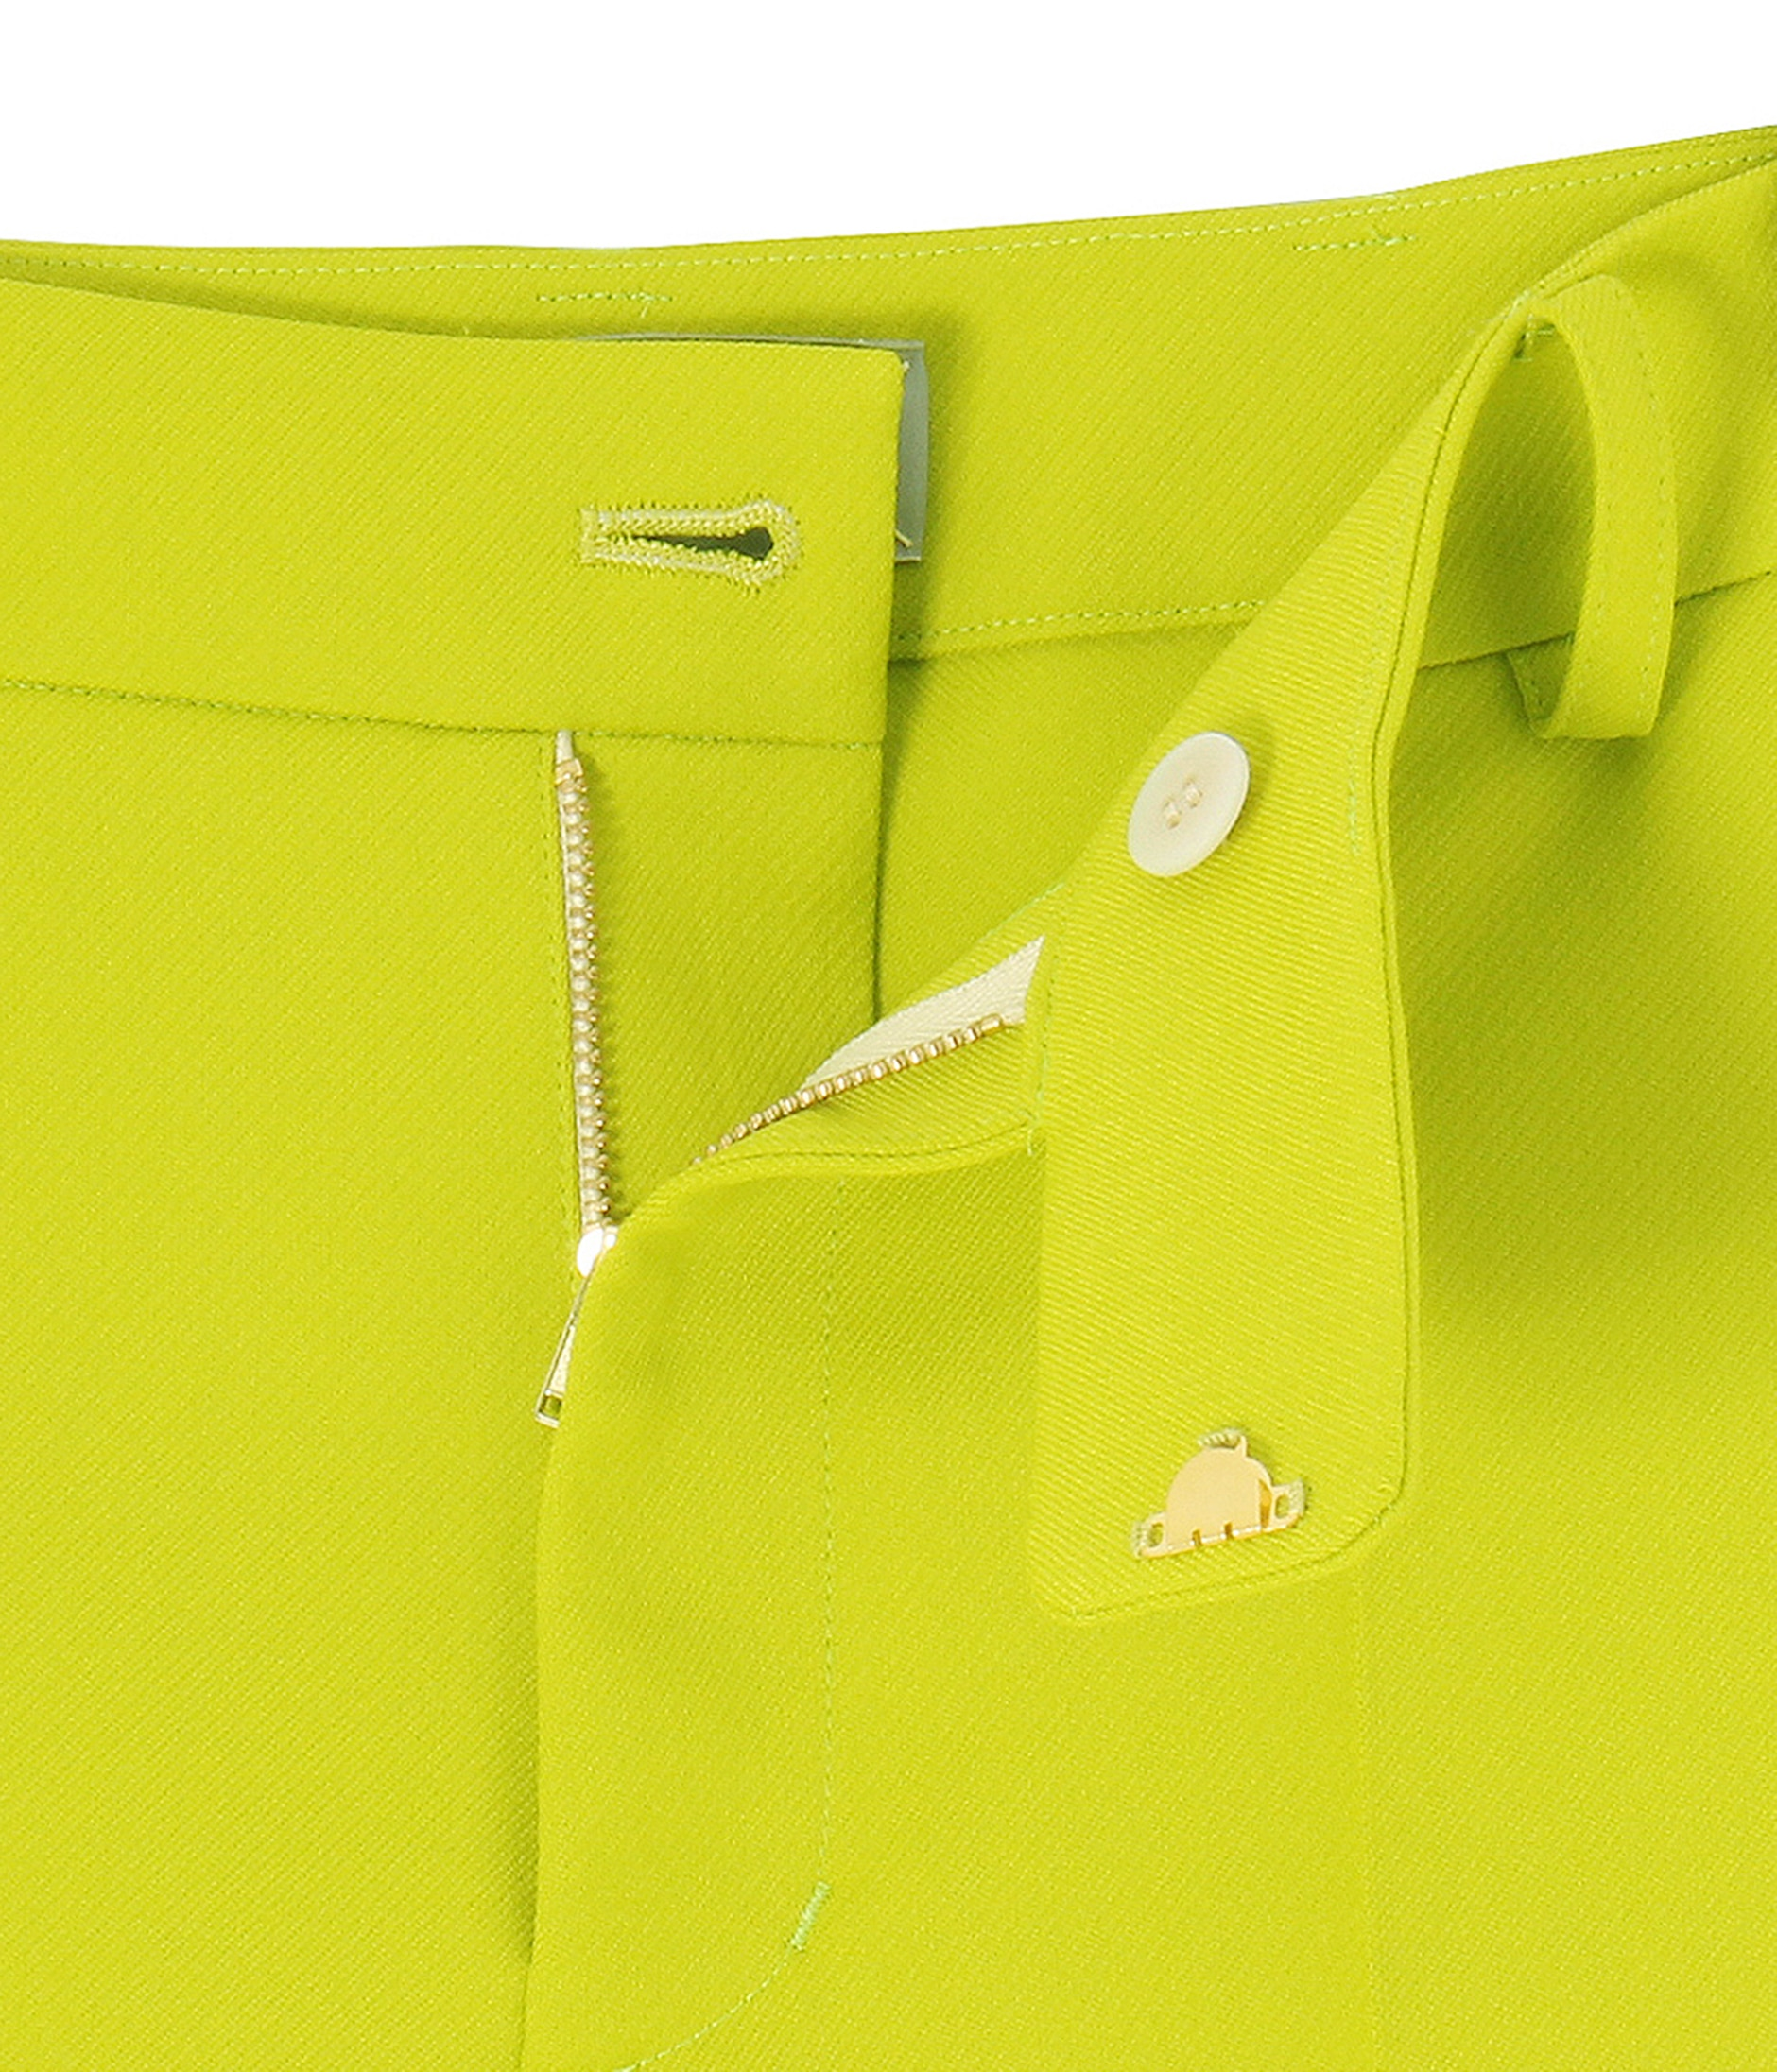 IONA TROUSERS 詳細画像 APPLE GREEN 5